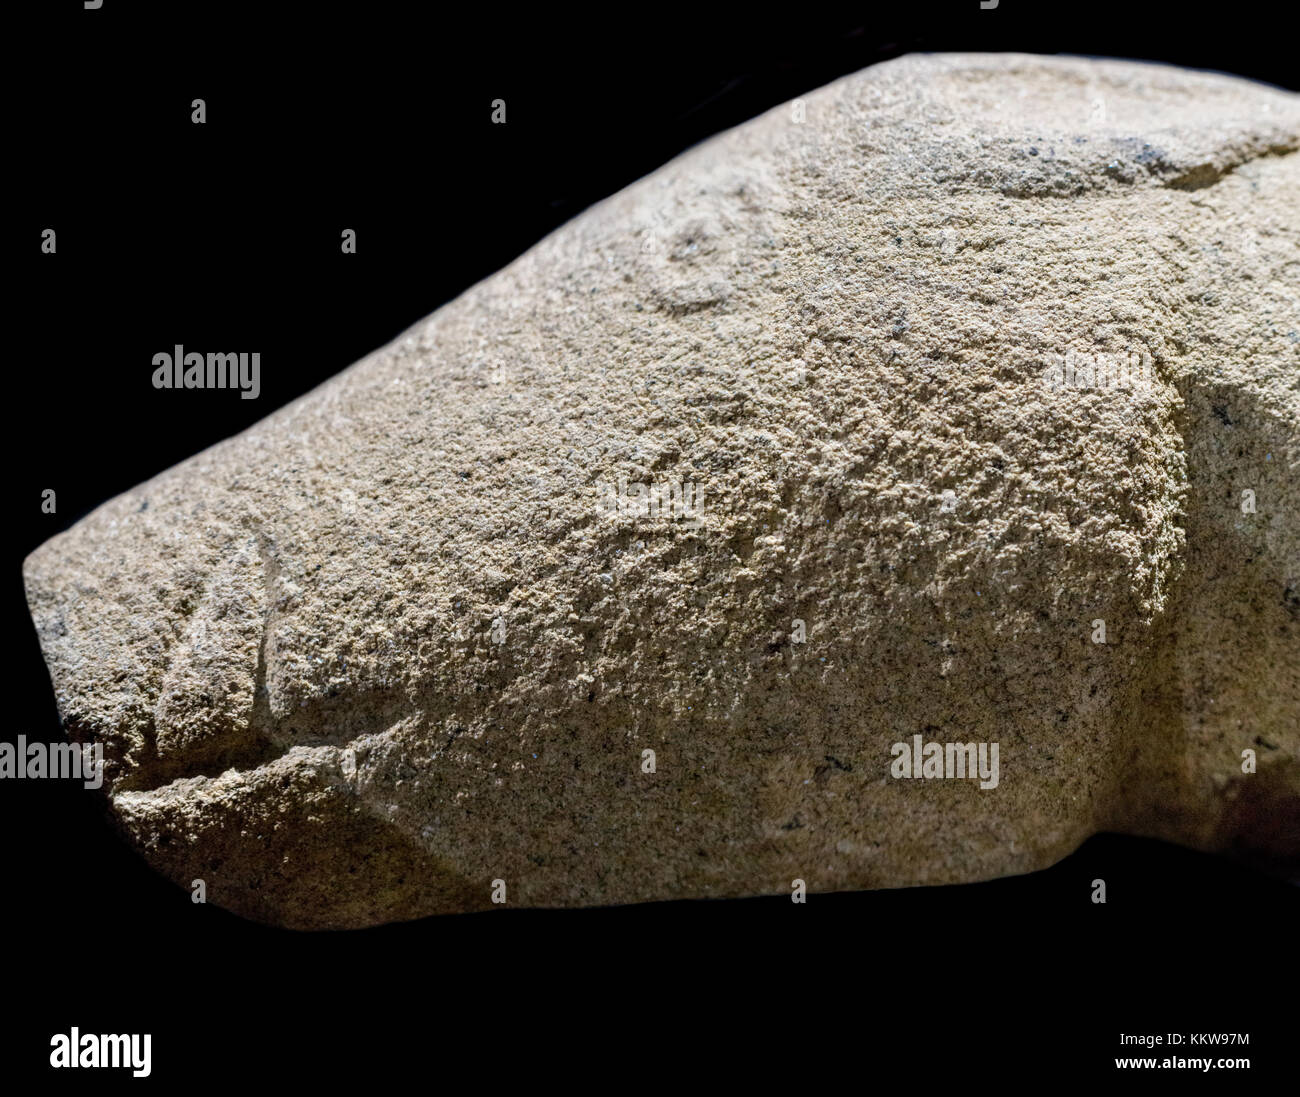 Madrigalejo Verraco head. Megalithic sculpture of boar made by Vettones on 4th century BC, Madrigalejo, Caceres, - Stock Image